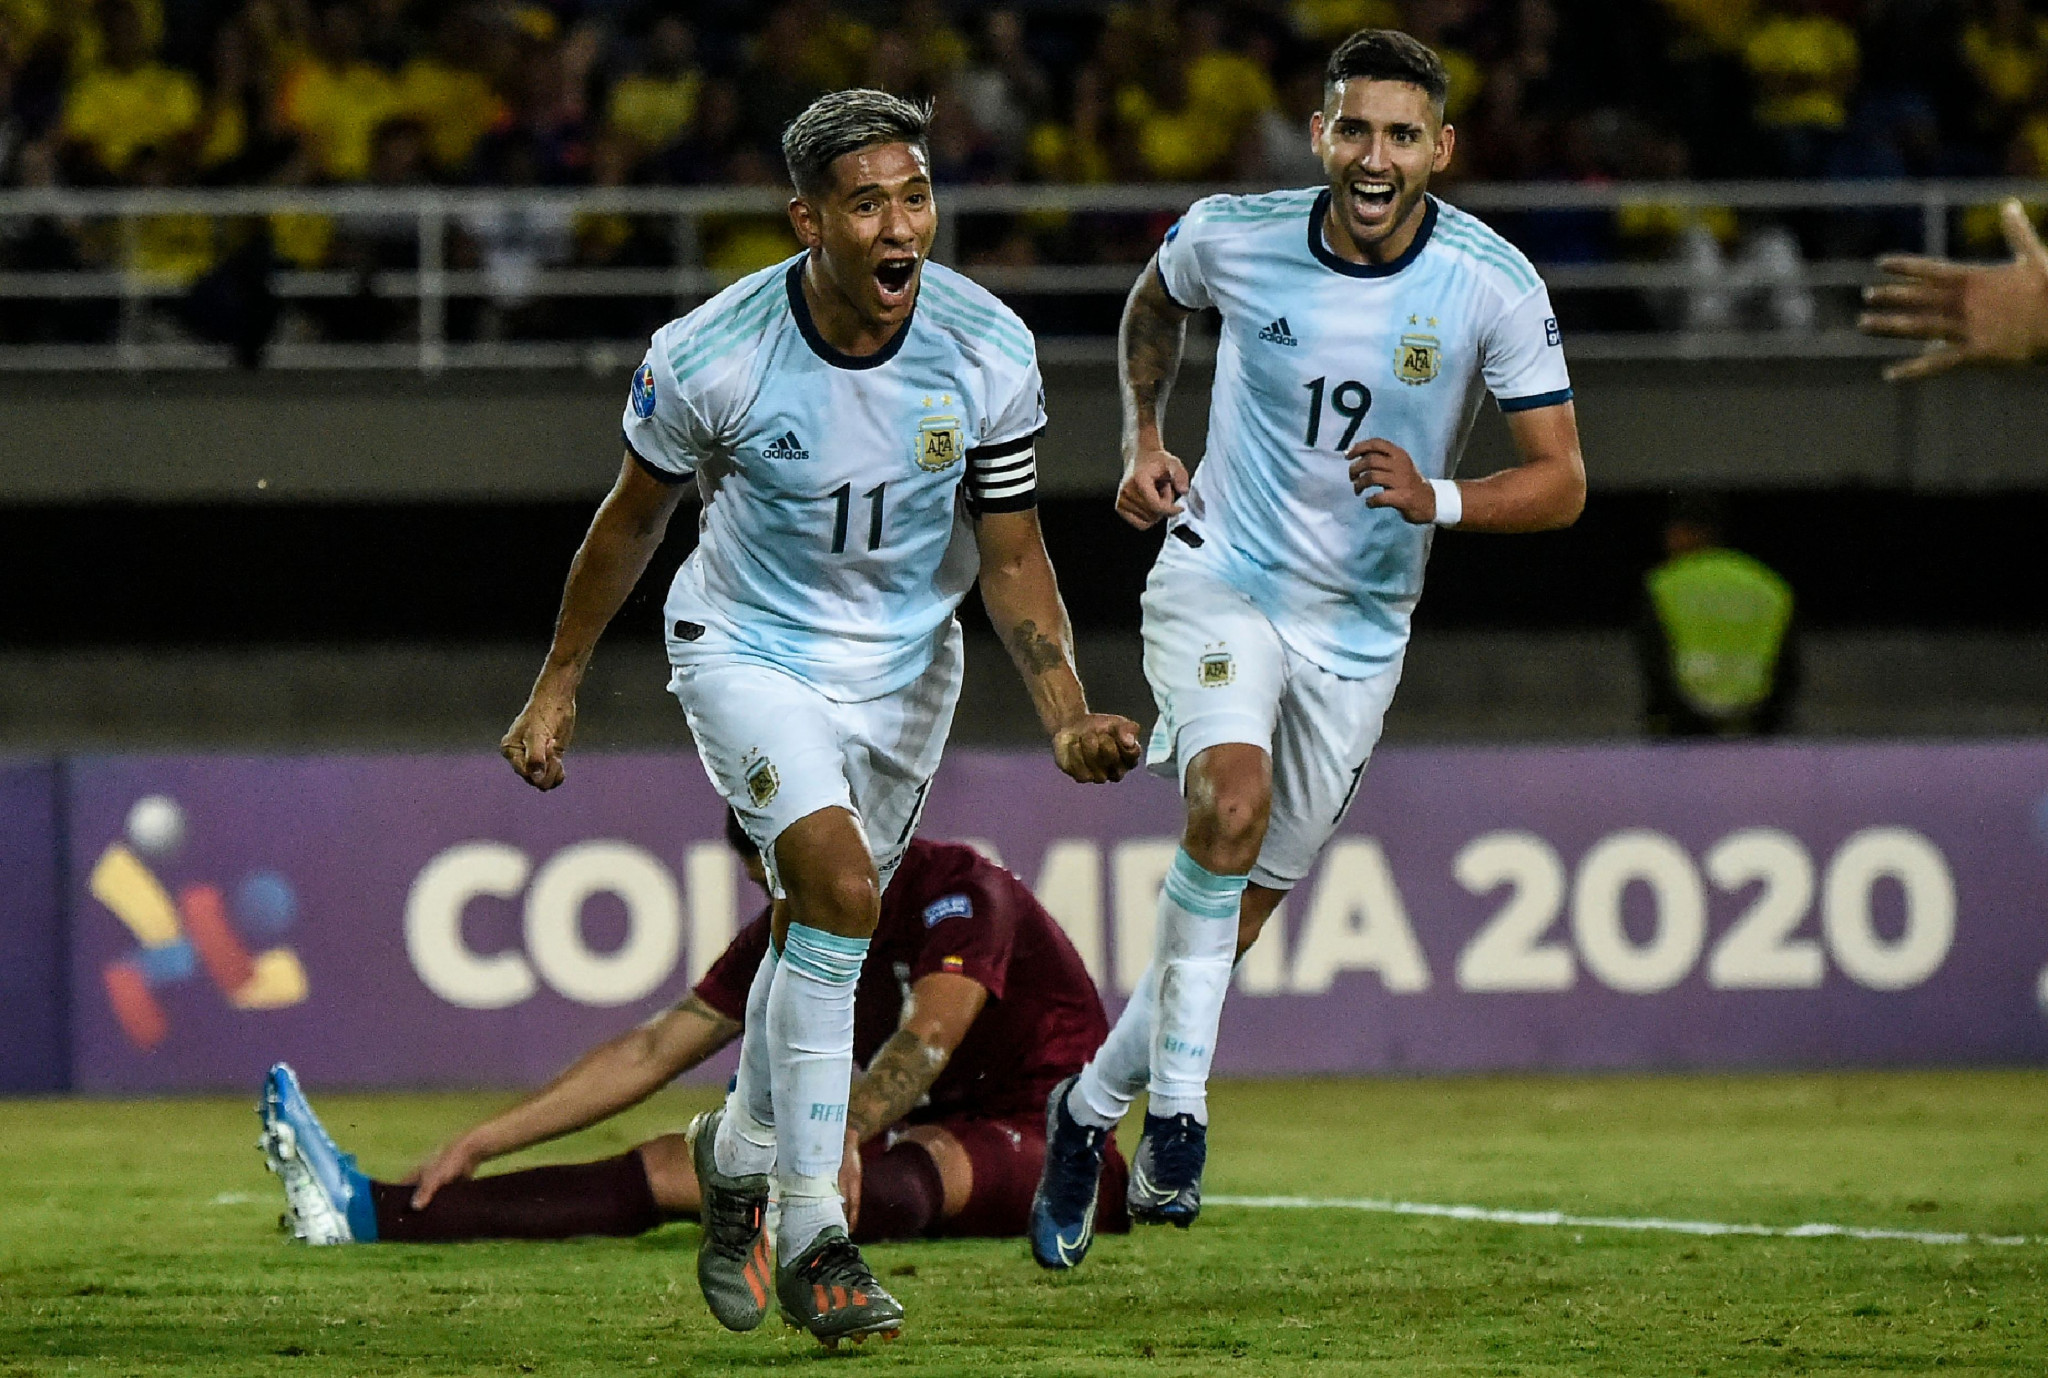 Argentina continue to impress at CONMEBOL Pre-Olympic Tournament